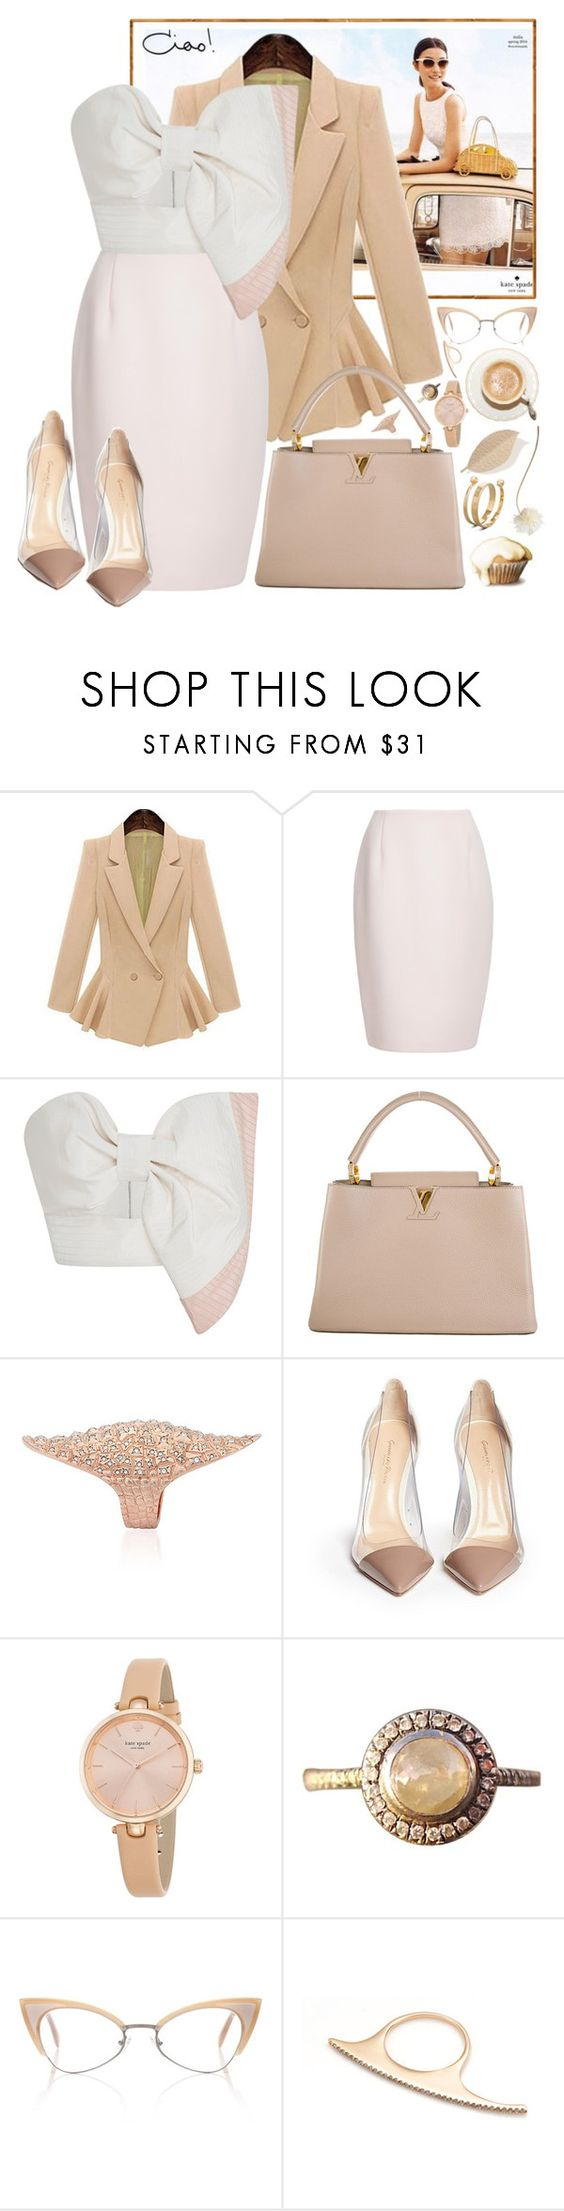 """""""Lady-Like!"""" by hennie-henne ❤ liked on Polyvore featuring Kate Spade, Finders Keepers, Johanna Ortiz, Louis Vuitton, Venyx, Gianvito Rossi, Barneys New York, Andy Wolf, Kismet by Milka and Alexander McQueen"""